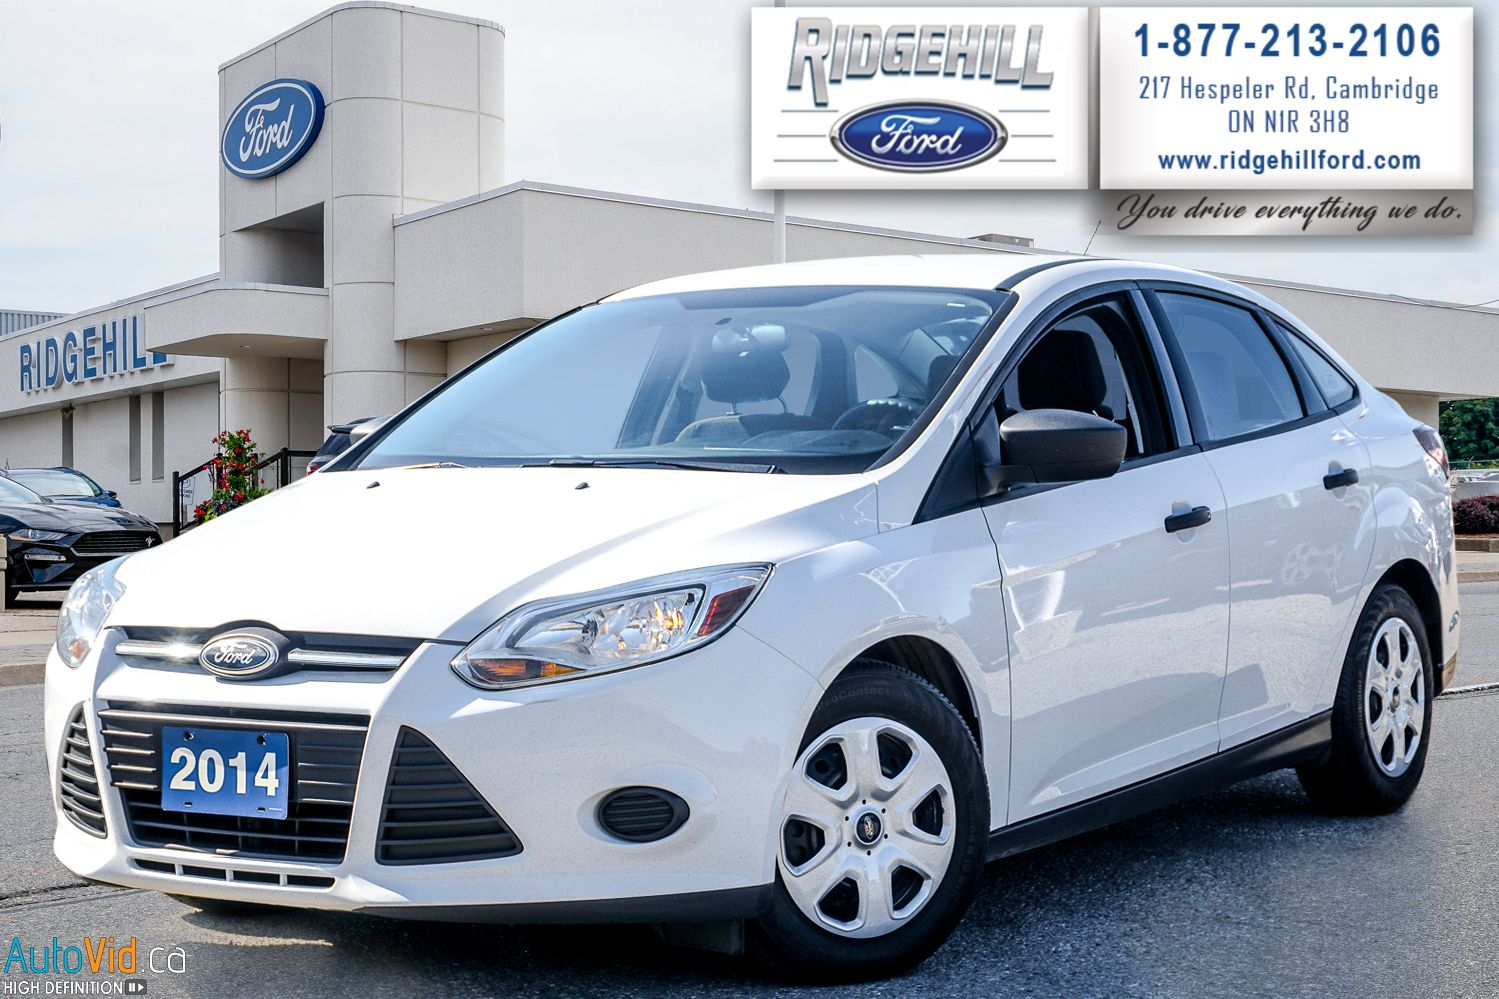 2014 Ford Focus Image